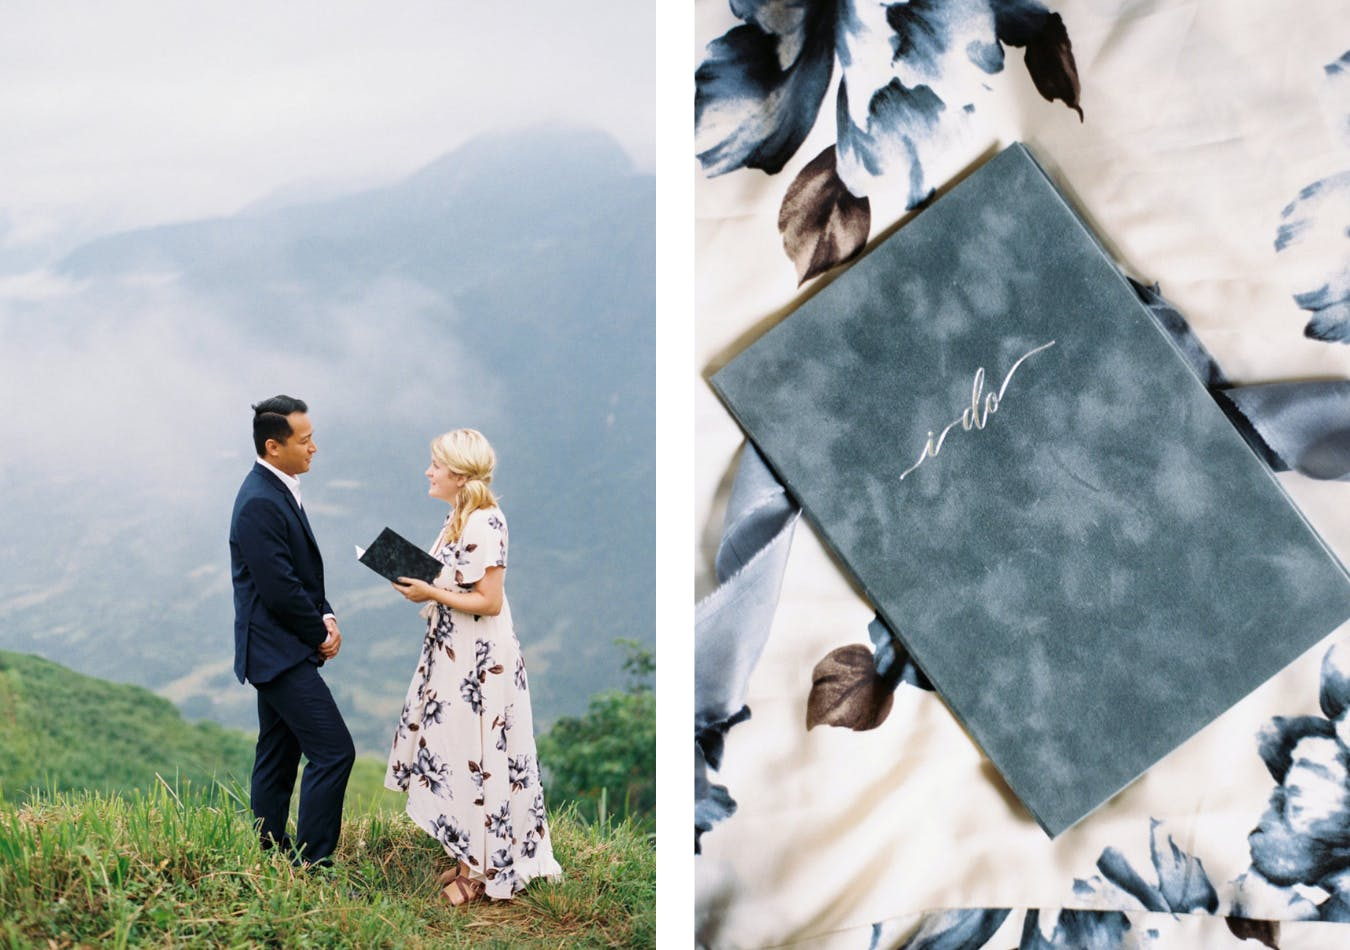 Couples renews vows in mist-filled Vietnamese mountains with custom-made navy vow books | PartySlate